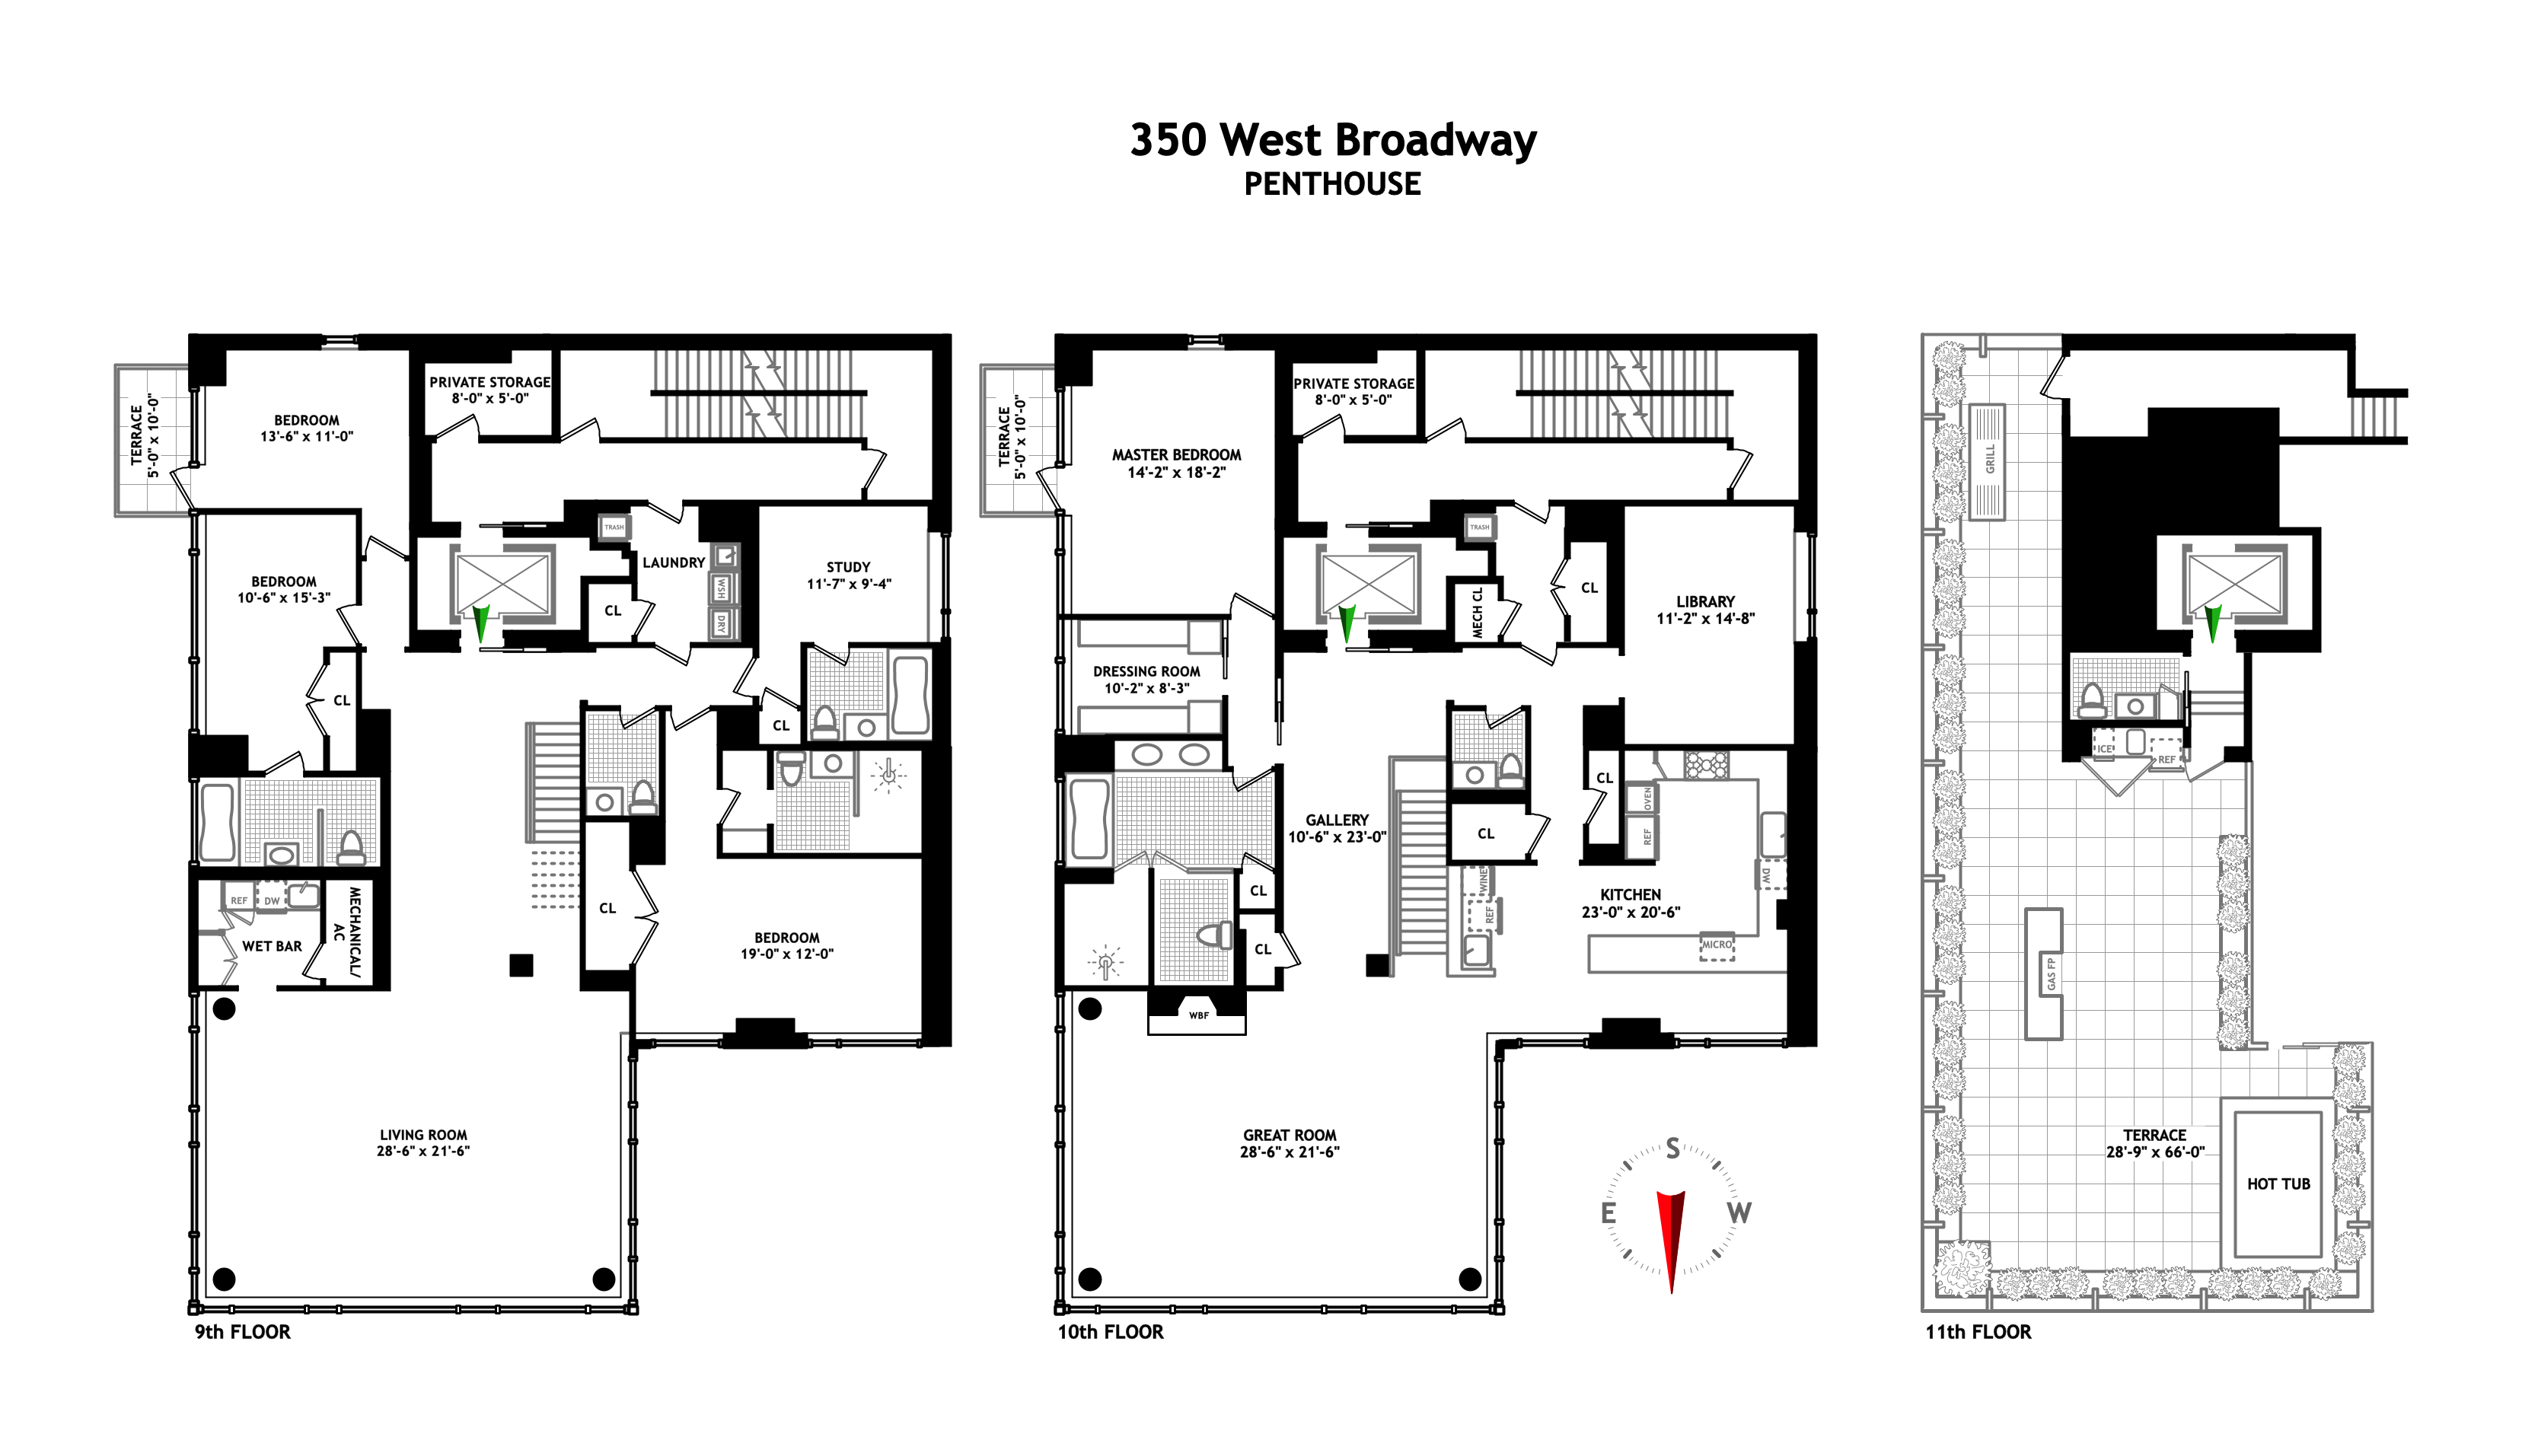 The Penthouse At 350 West Broadway Majestic Penthouses